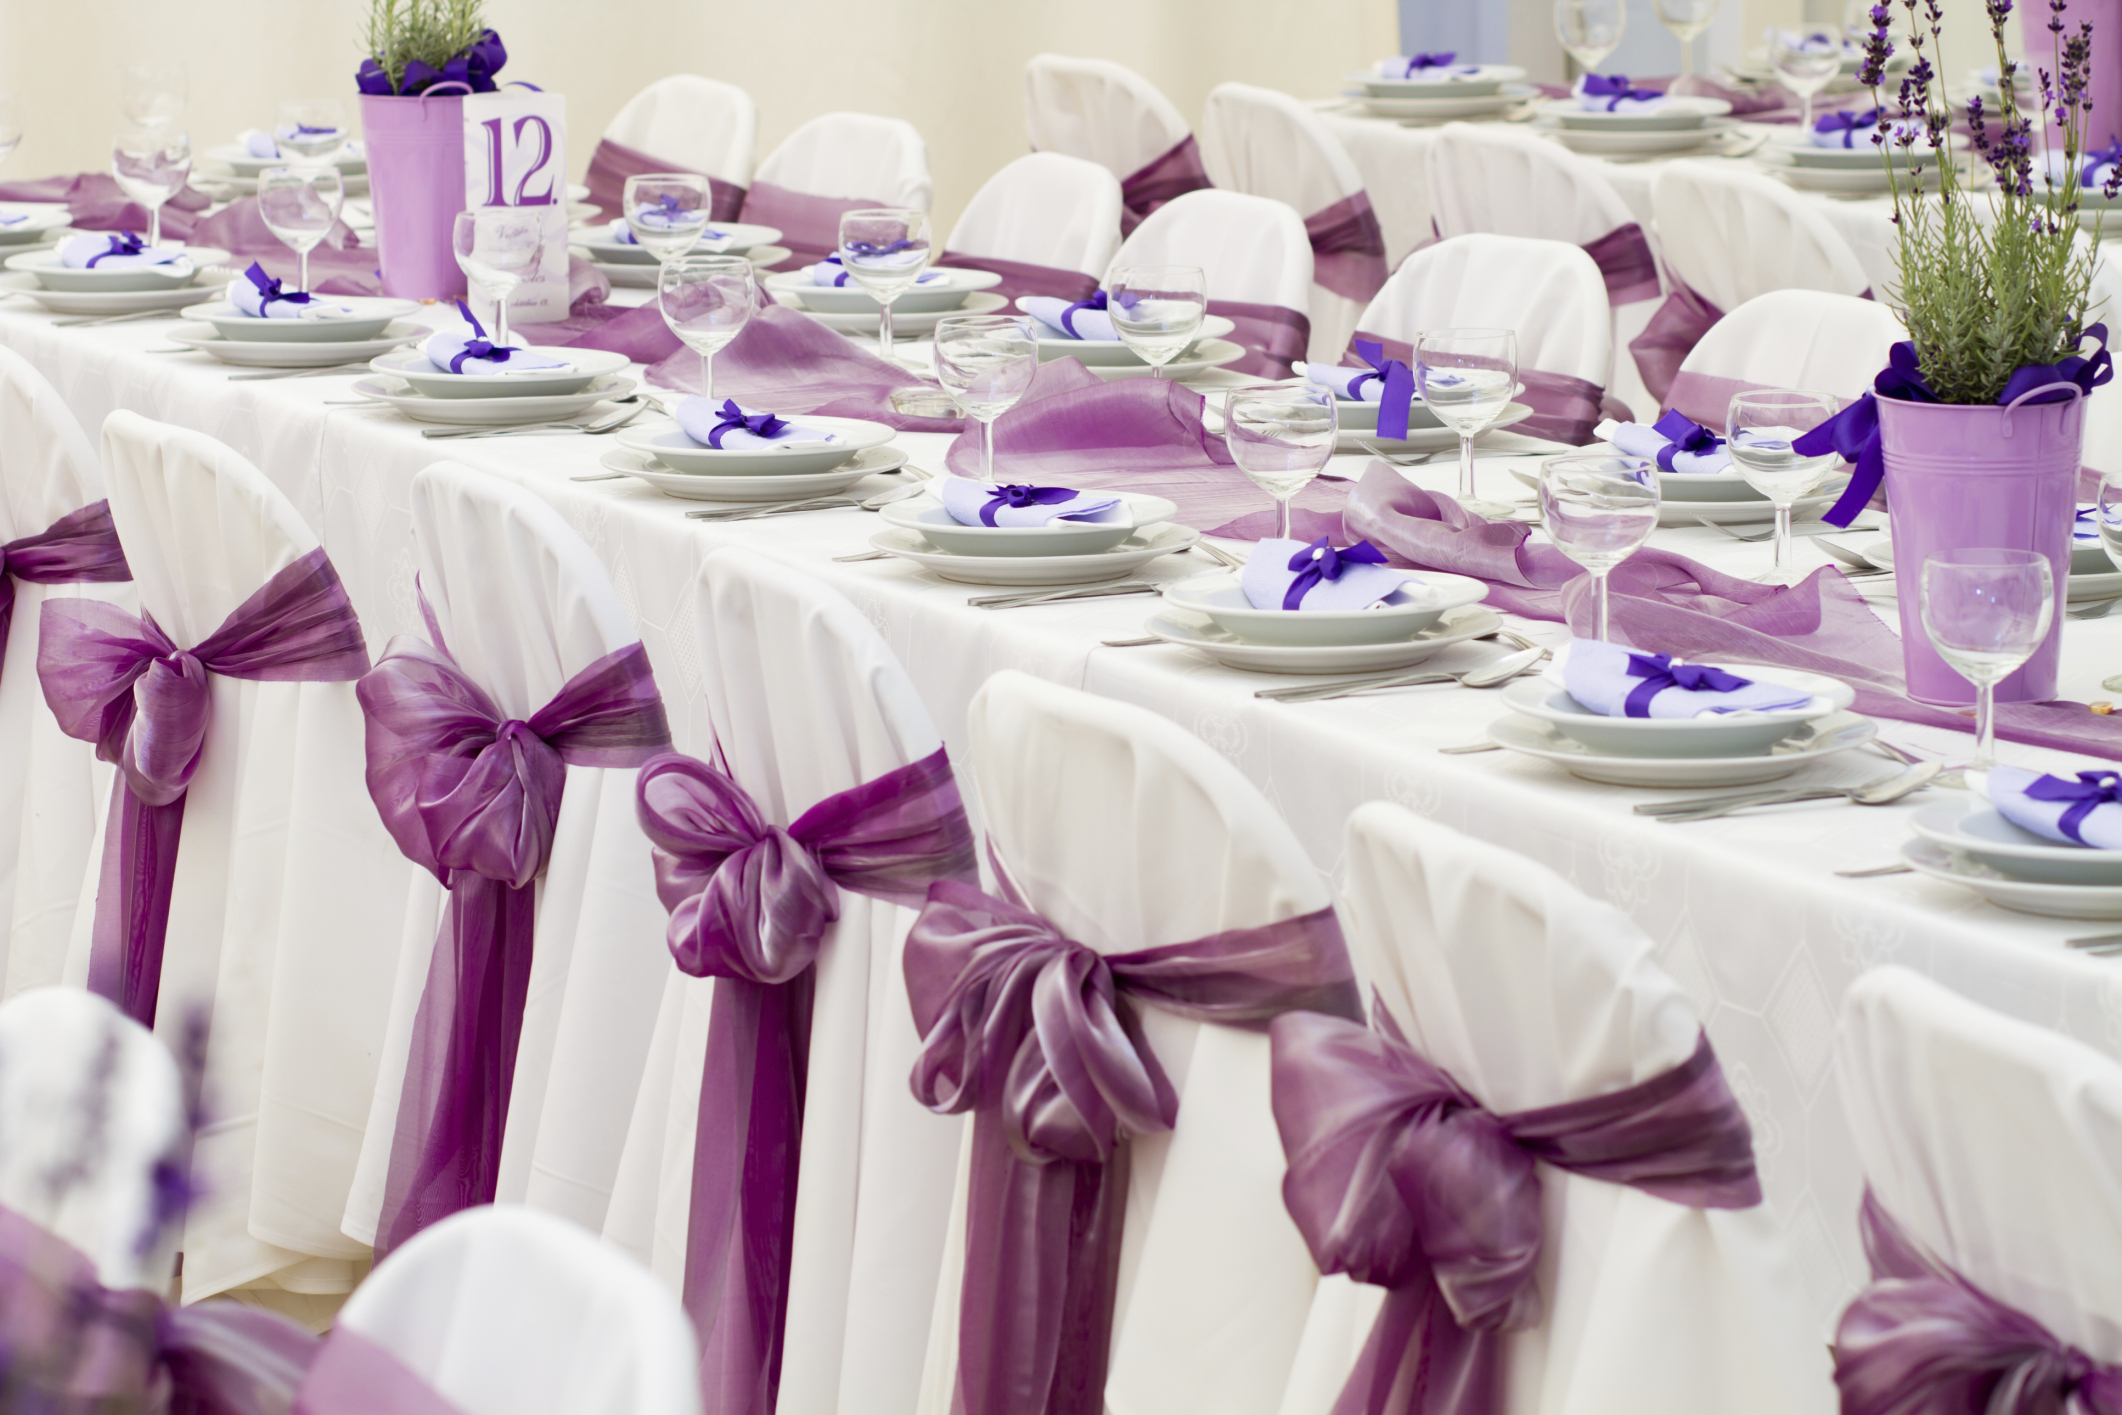 chair covers for sale melbourne pink gold wedding articles easy weddings show in decorations